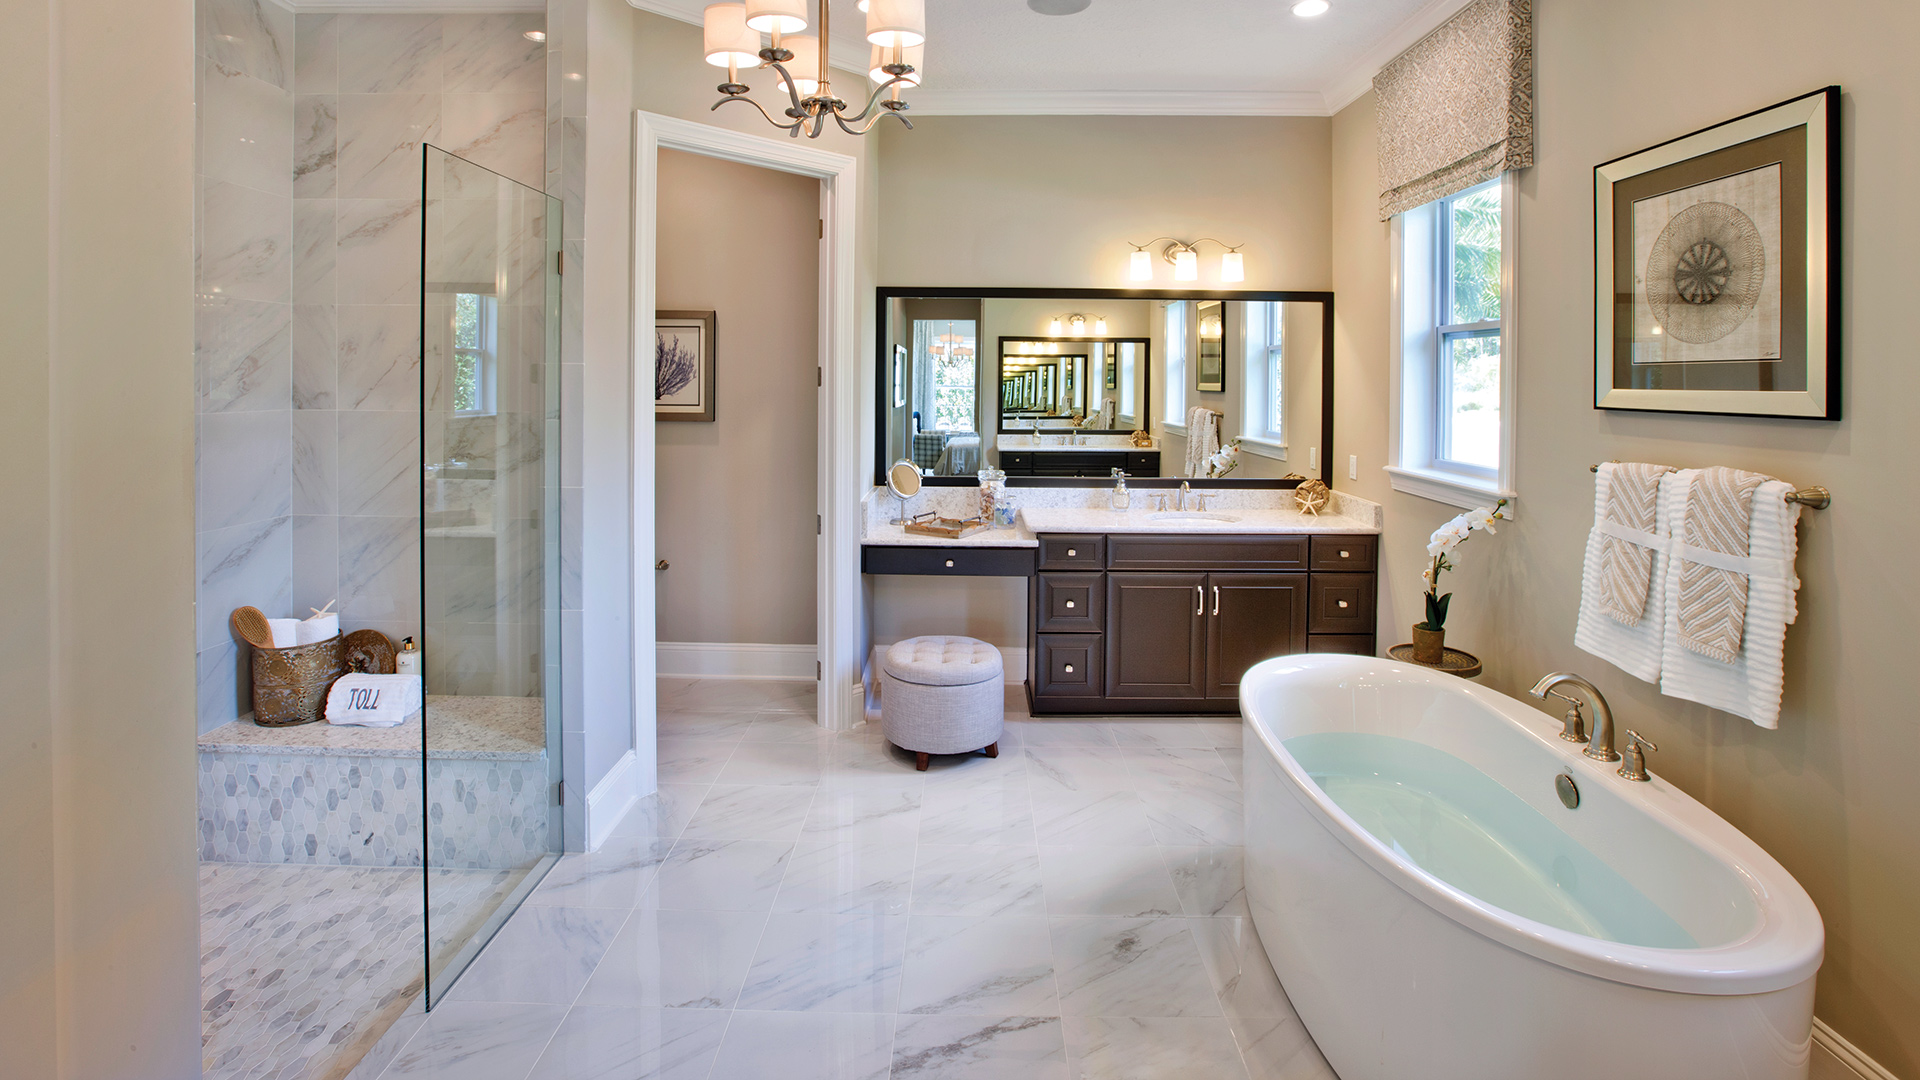 Luxurious bathrooms with large showers